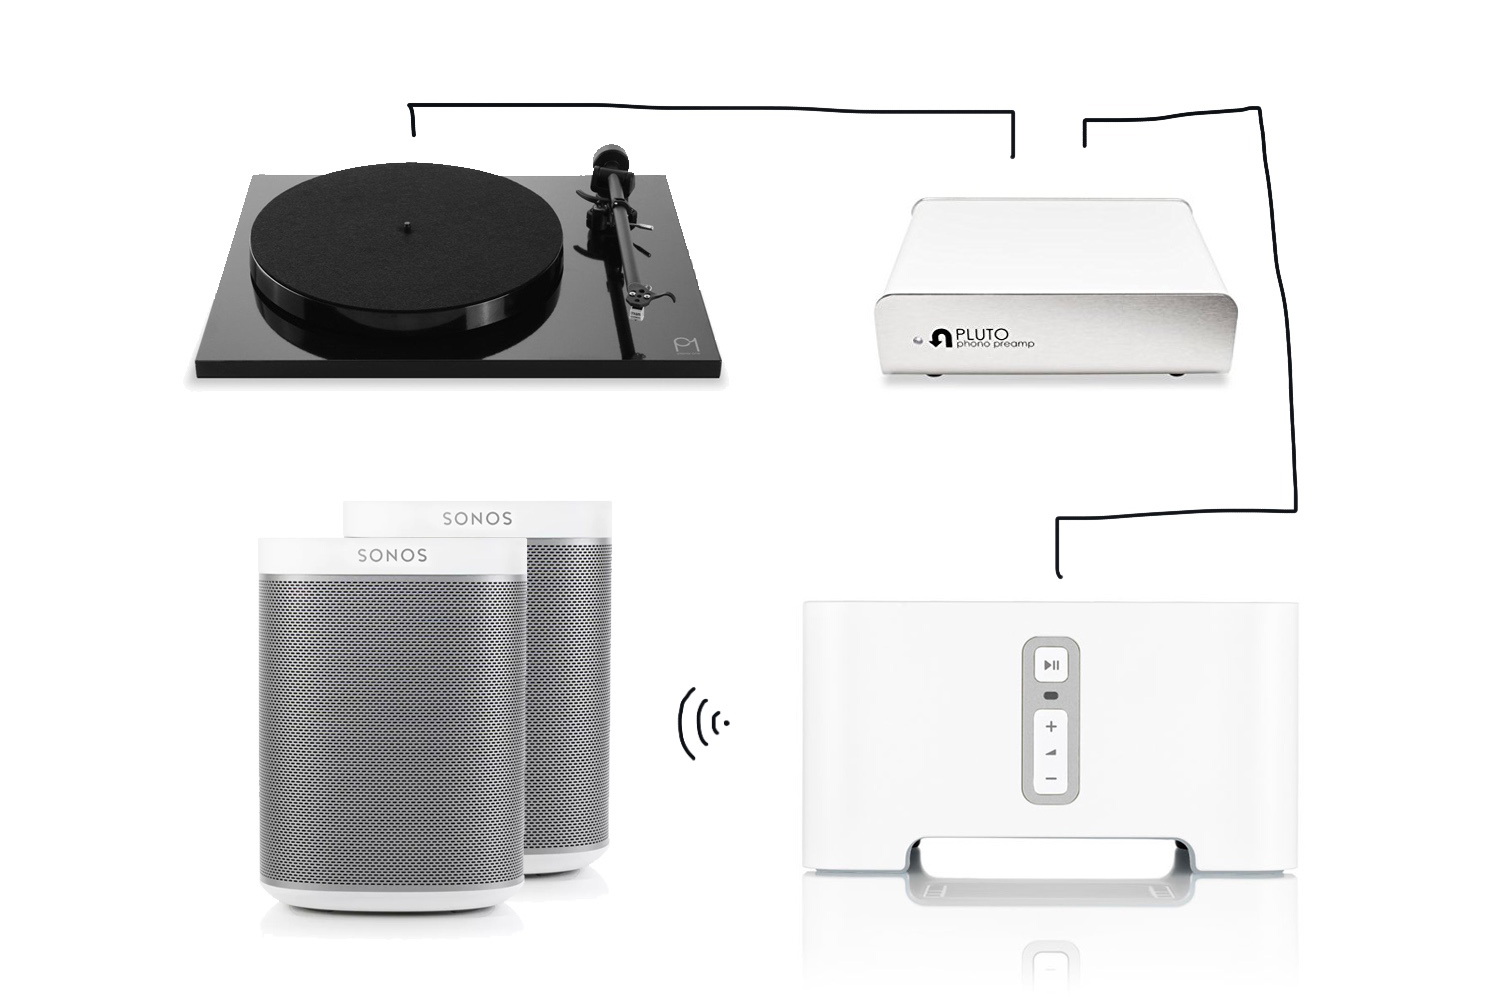 Adding a Turntable to Sonos System | Deuce Cities Henhouse